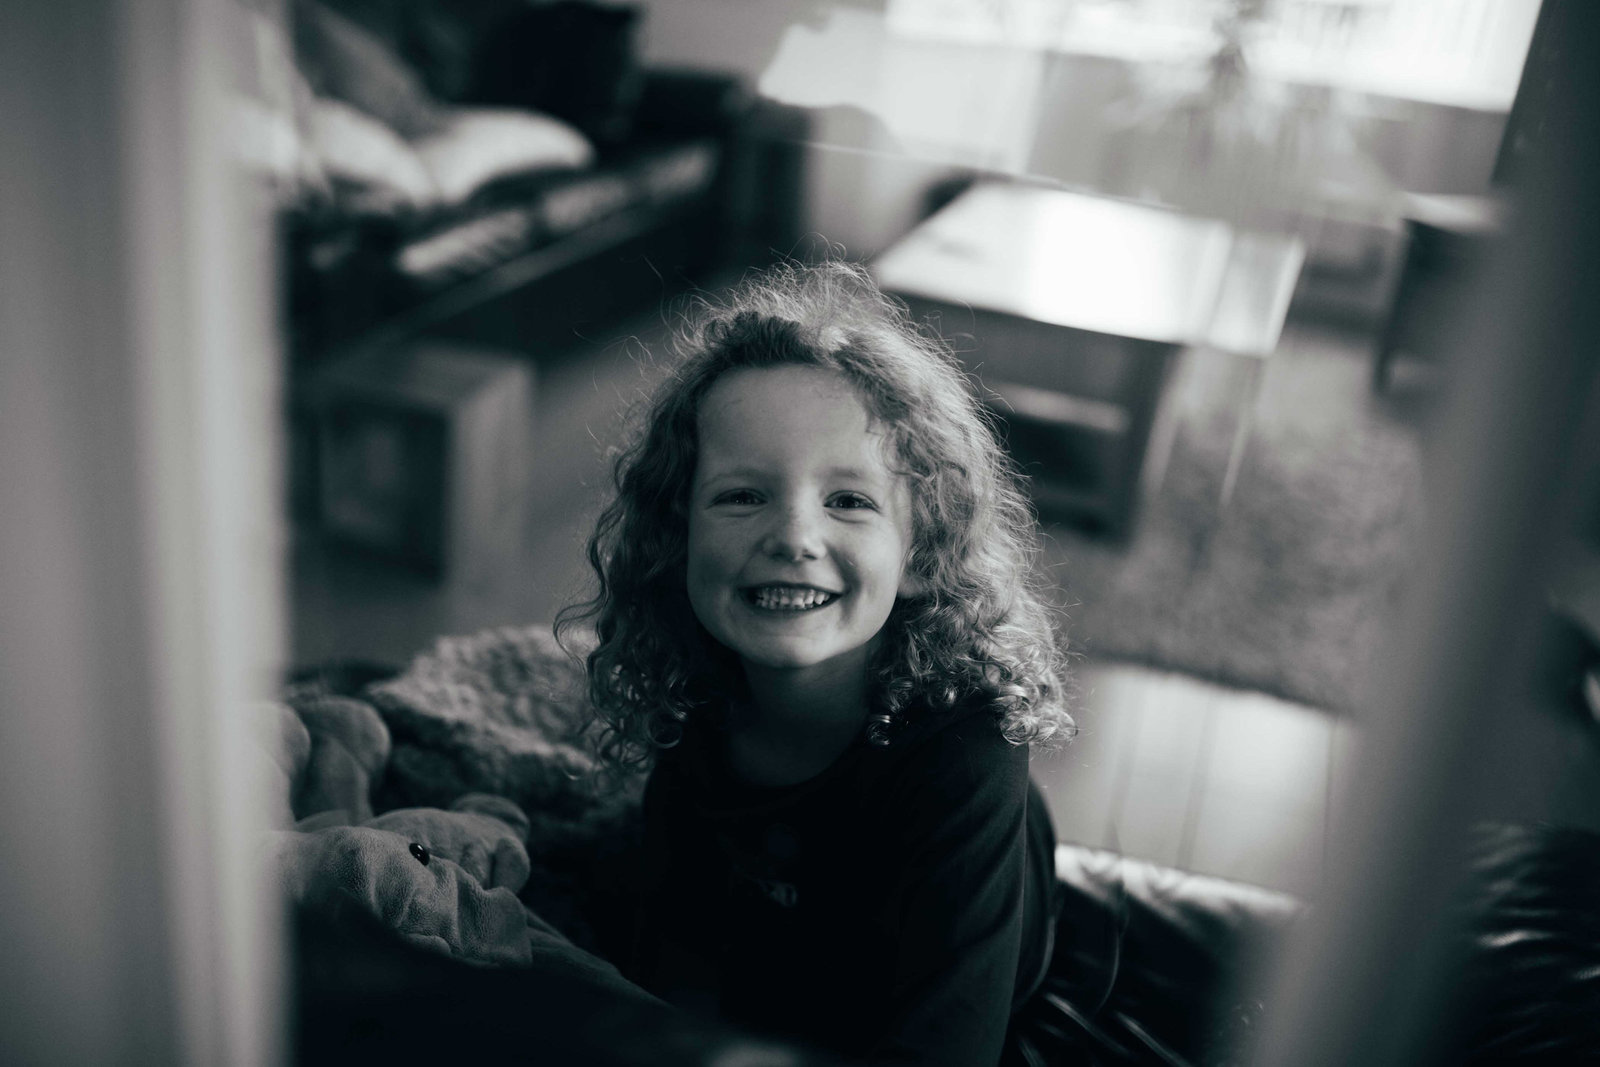 Black and white natural photograph of curly haired smiling Suffolk girl at home with family